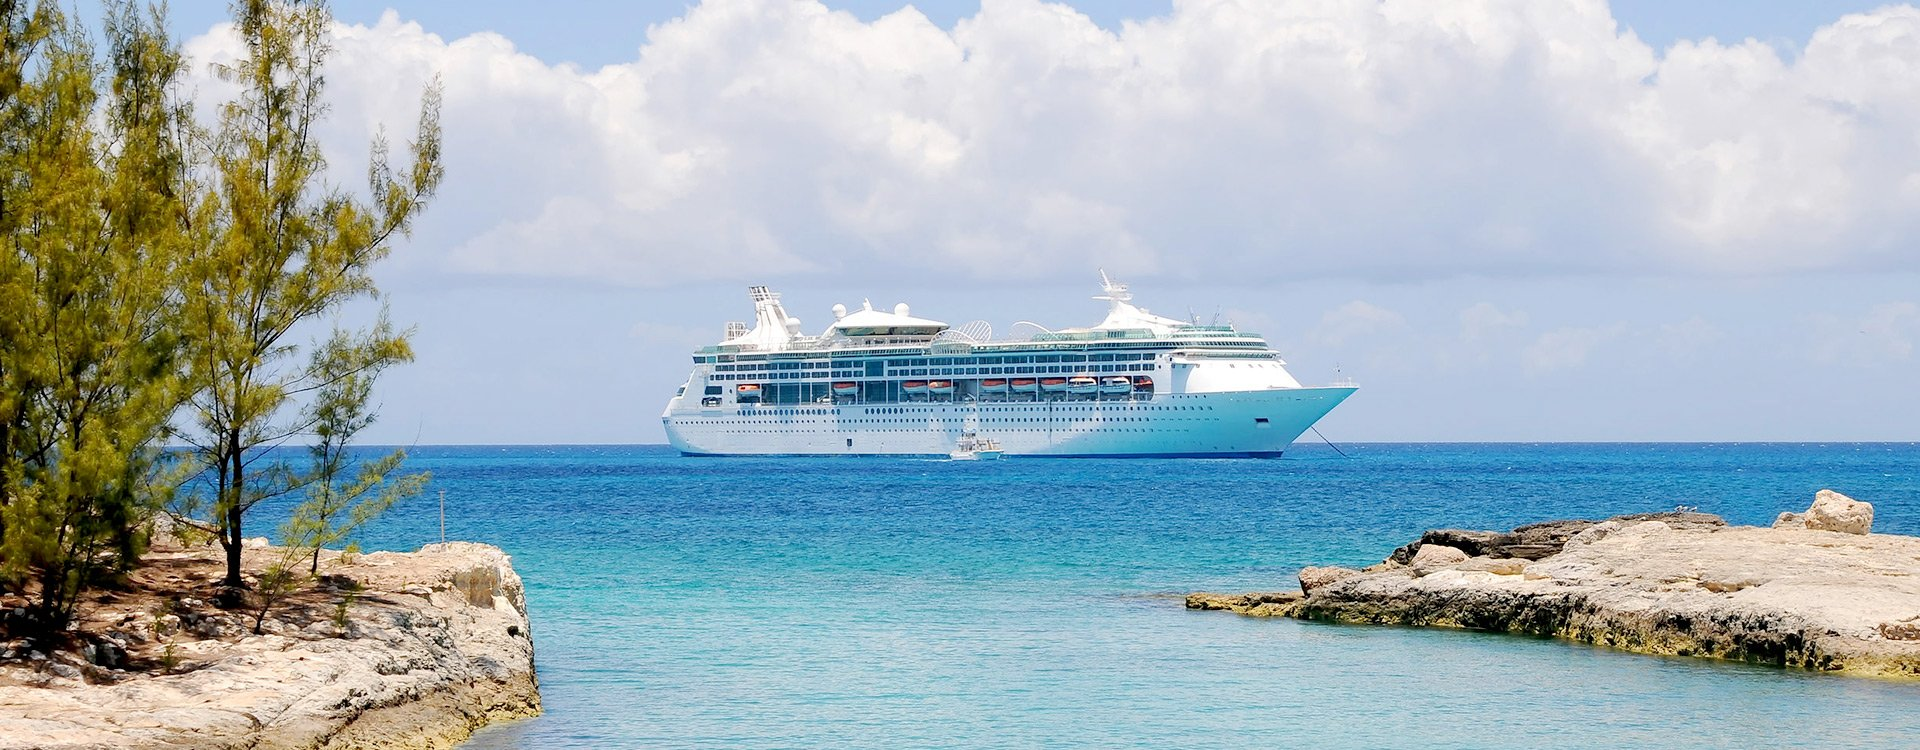 Combine Your CME with A Caribbean